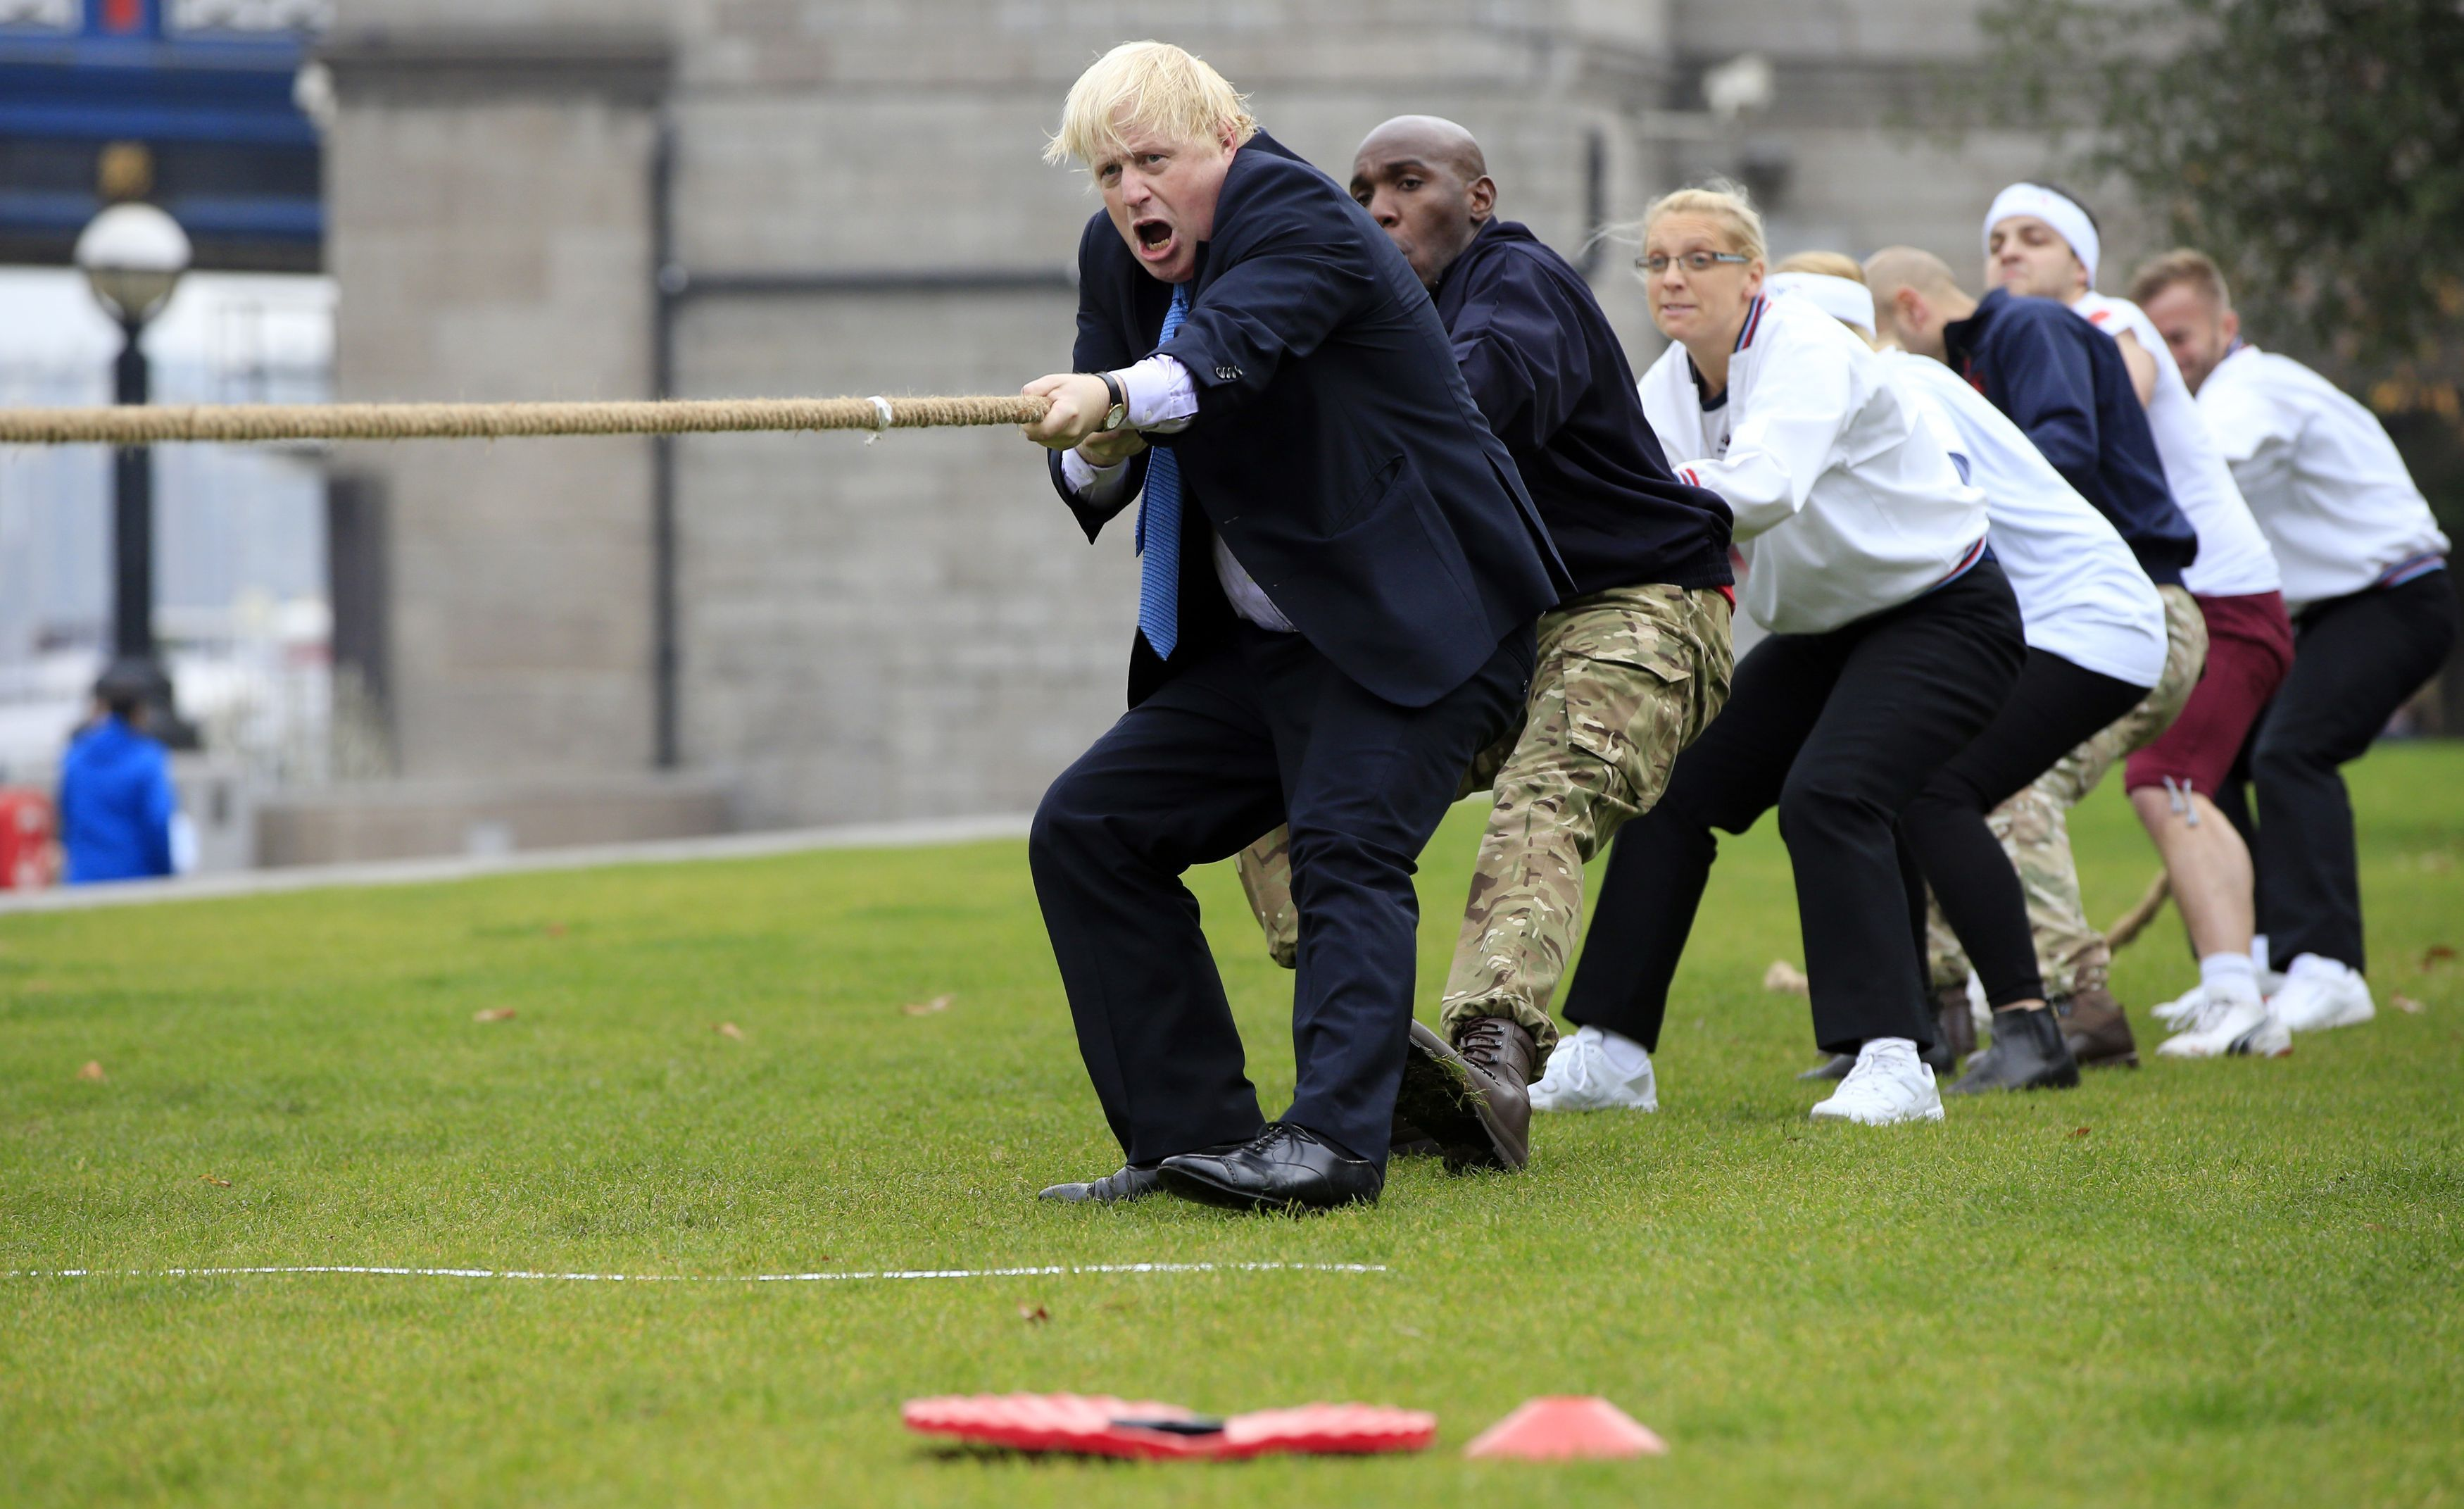 Mayor of London Boris Johnson (left) takes part in a tug of war with personnel from the Royal Navy, the Army and the Royal Air Force at the launch of London Poppy Day, on Potters Field, next to City Hall in London.